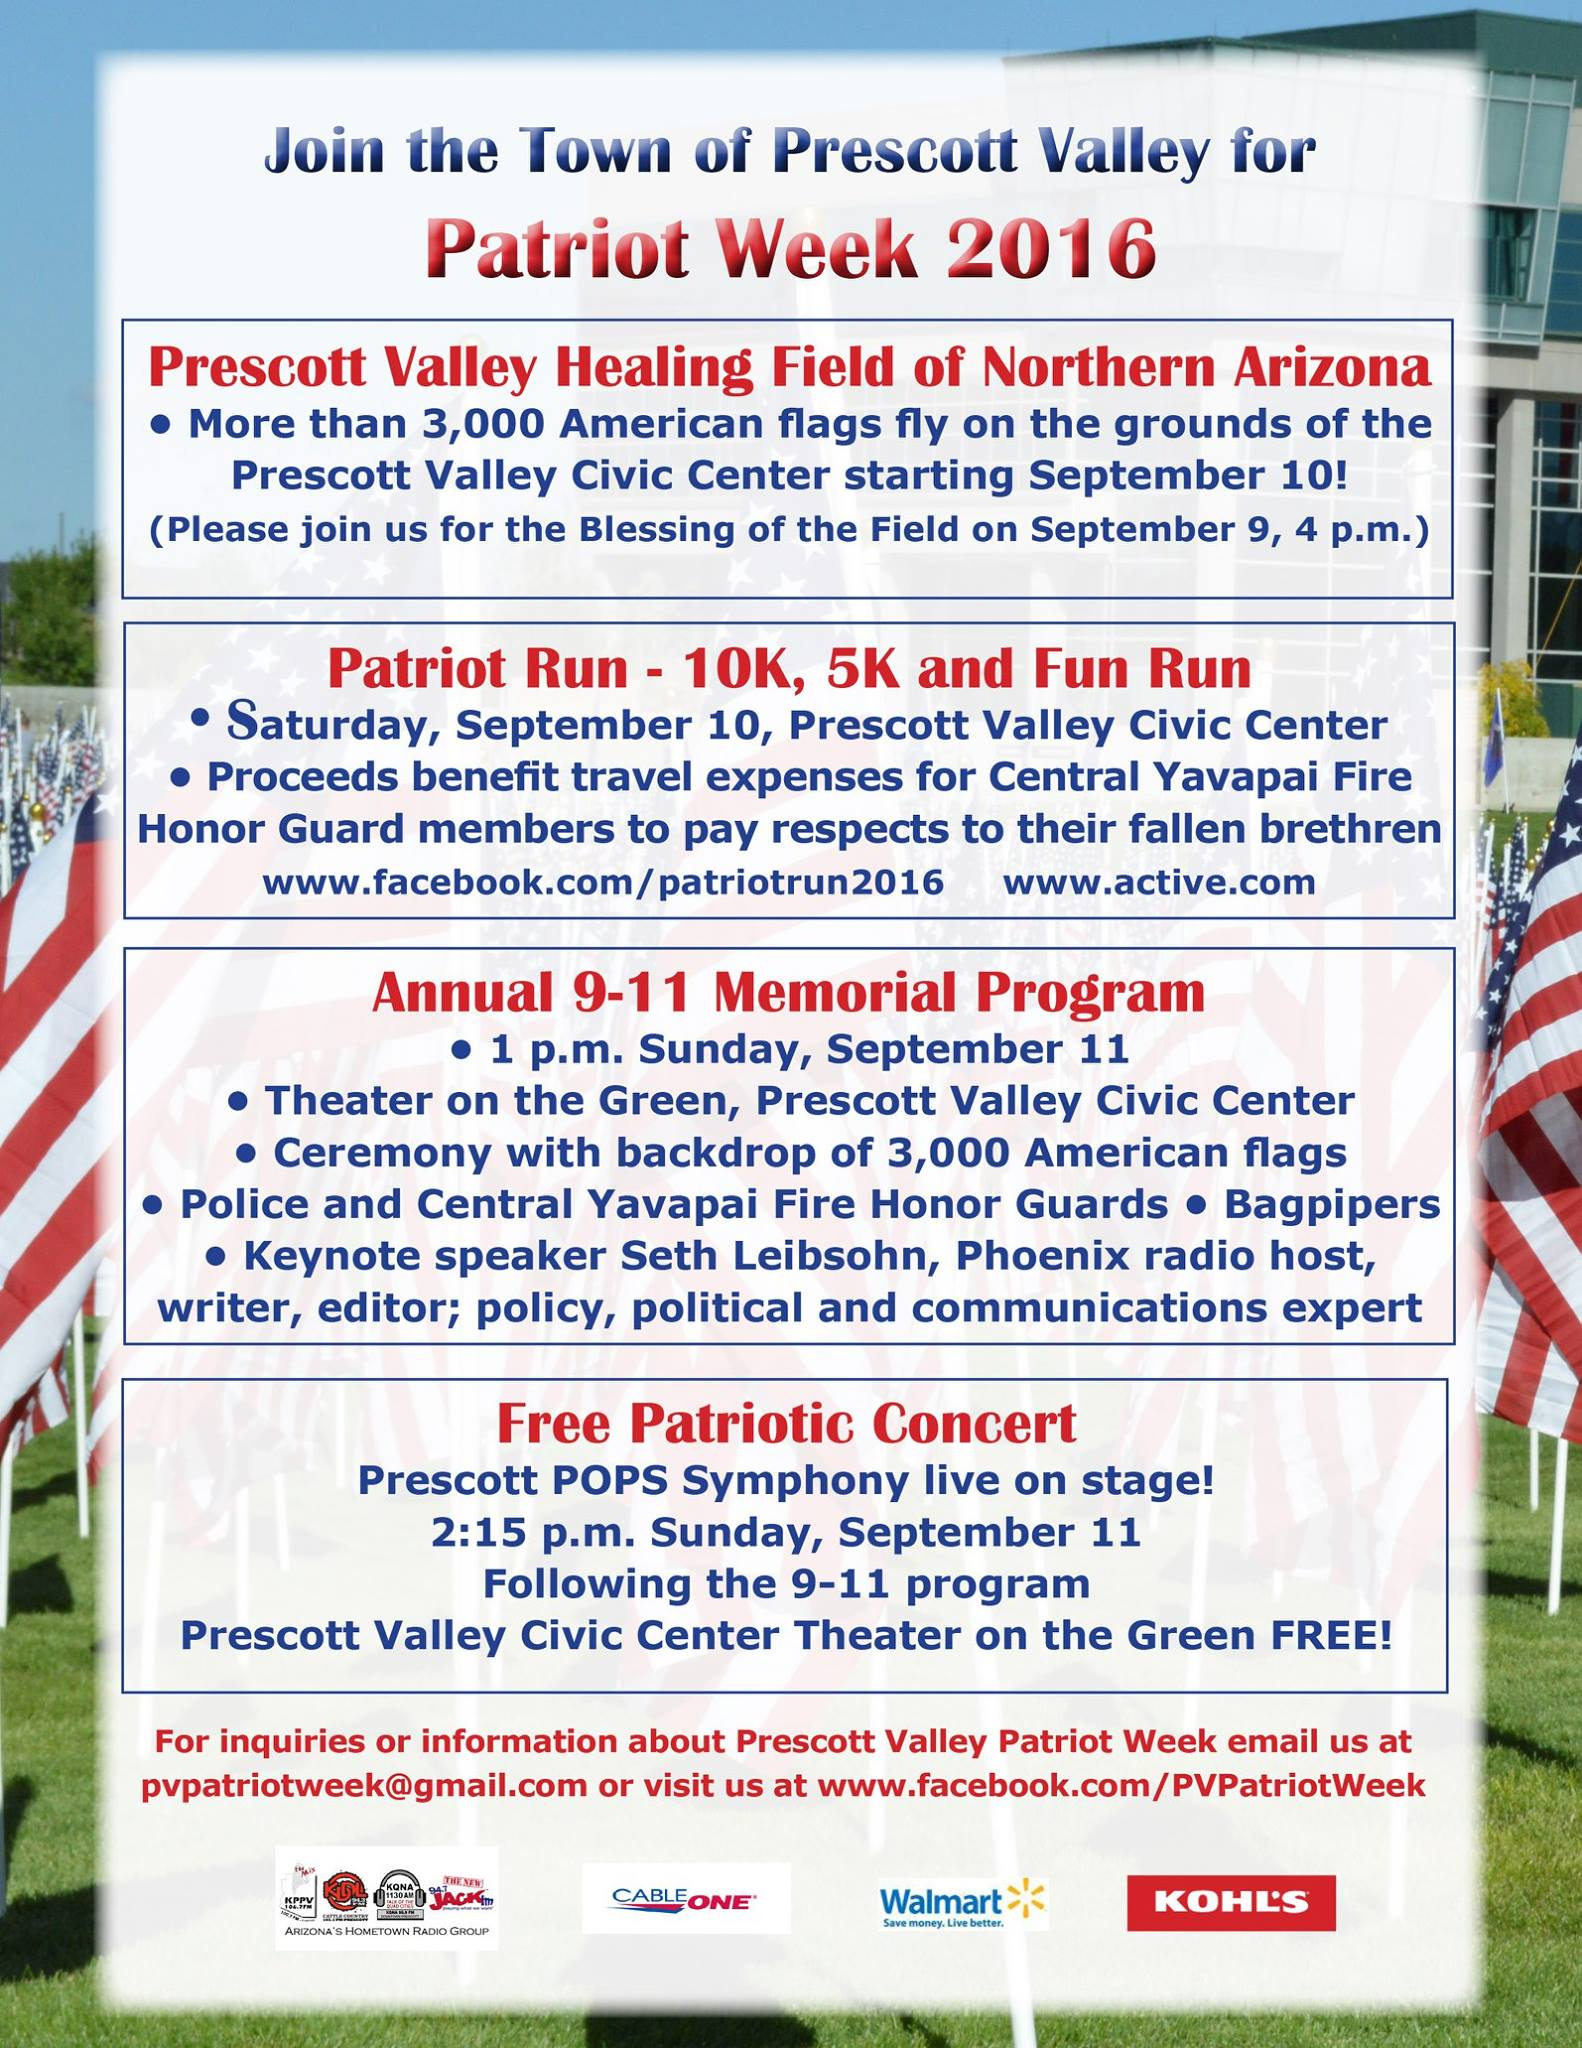 Patriot Week 2016 Prescott Valley